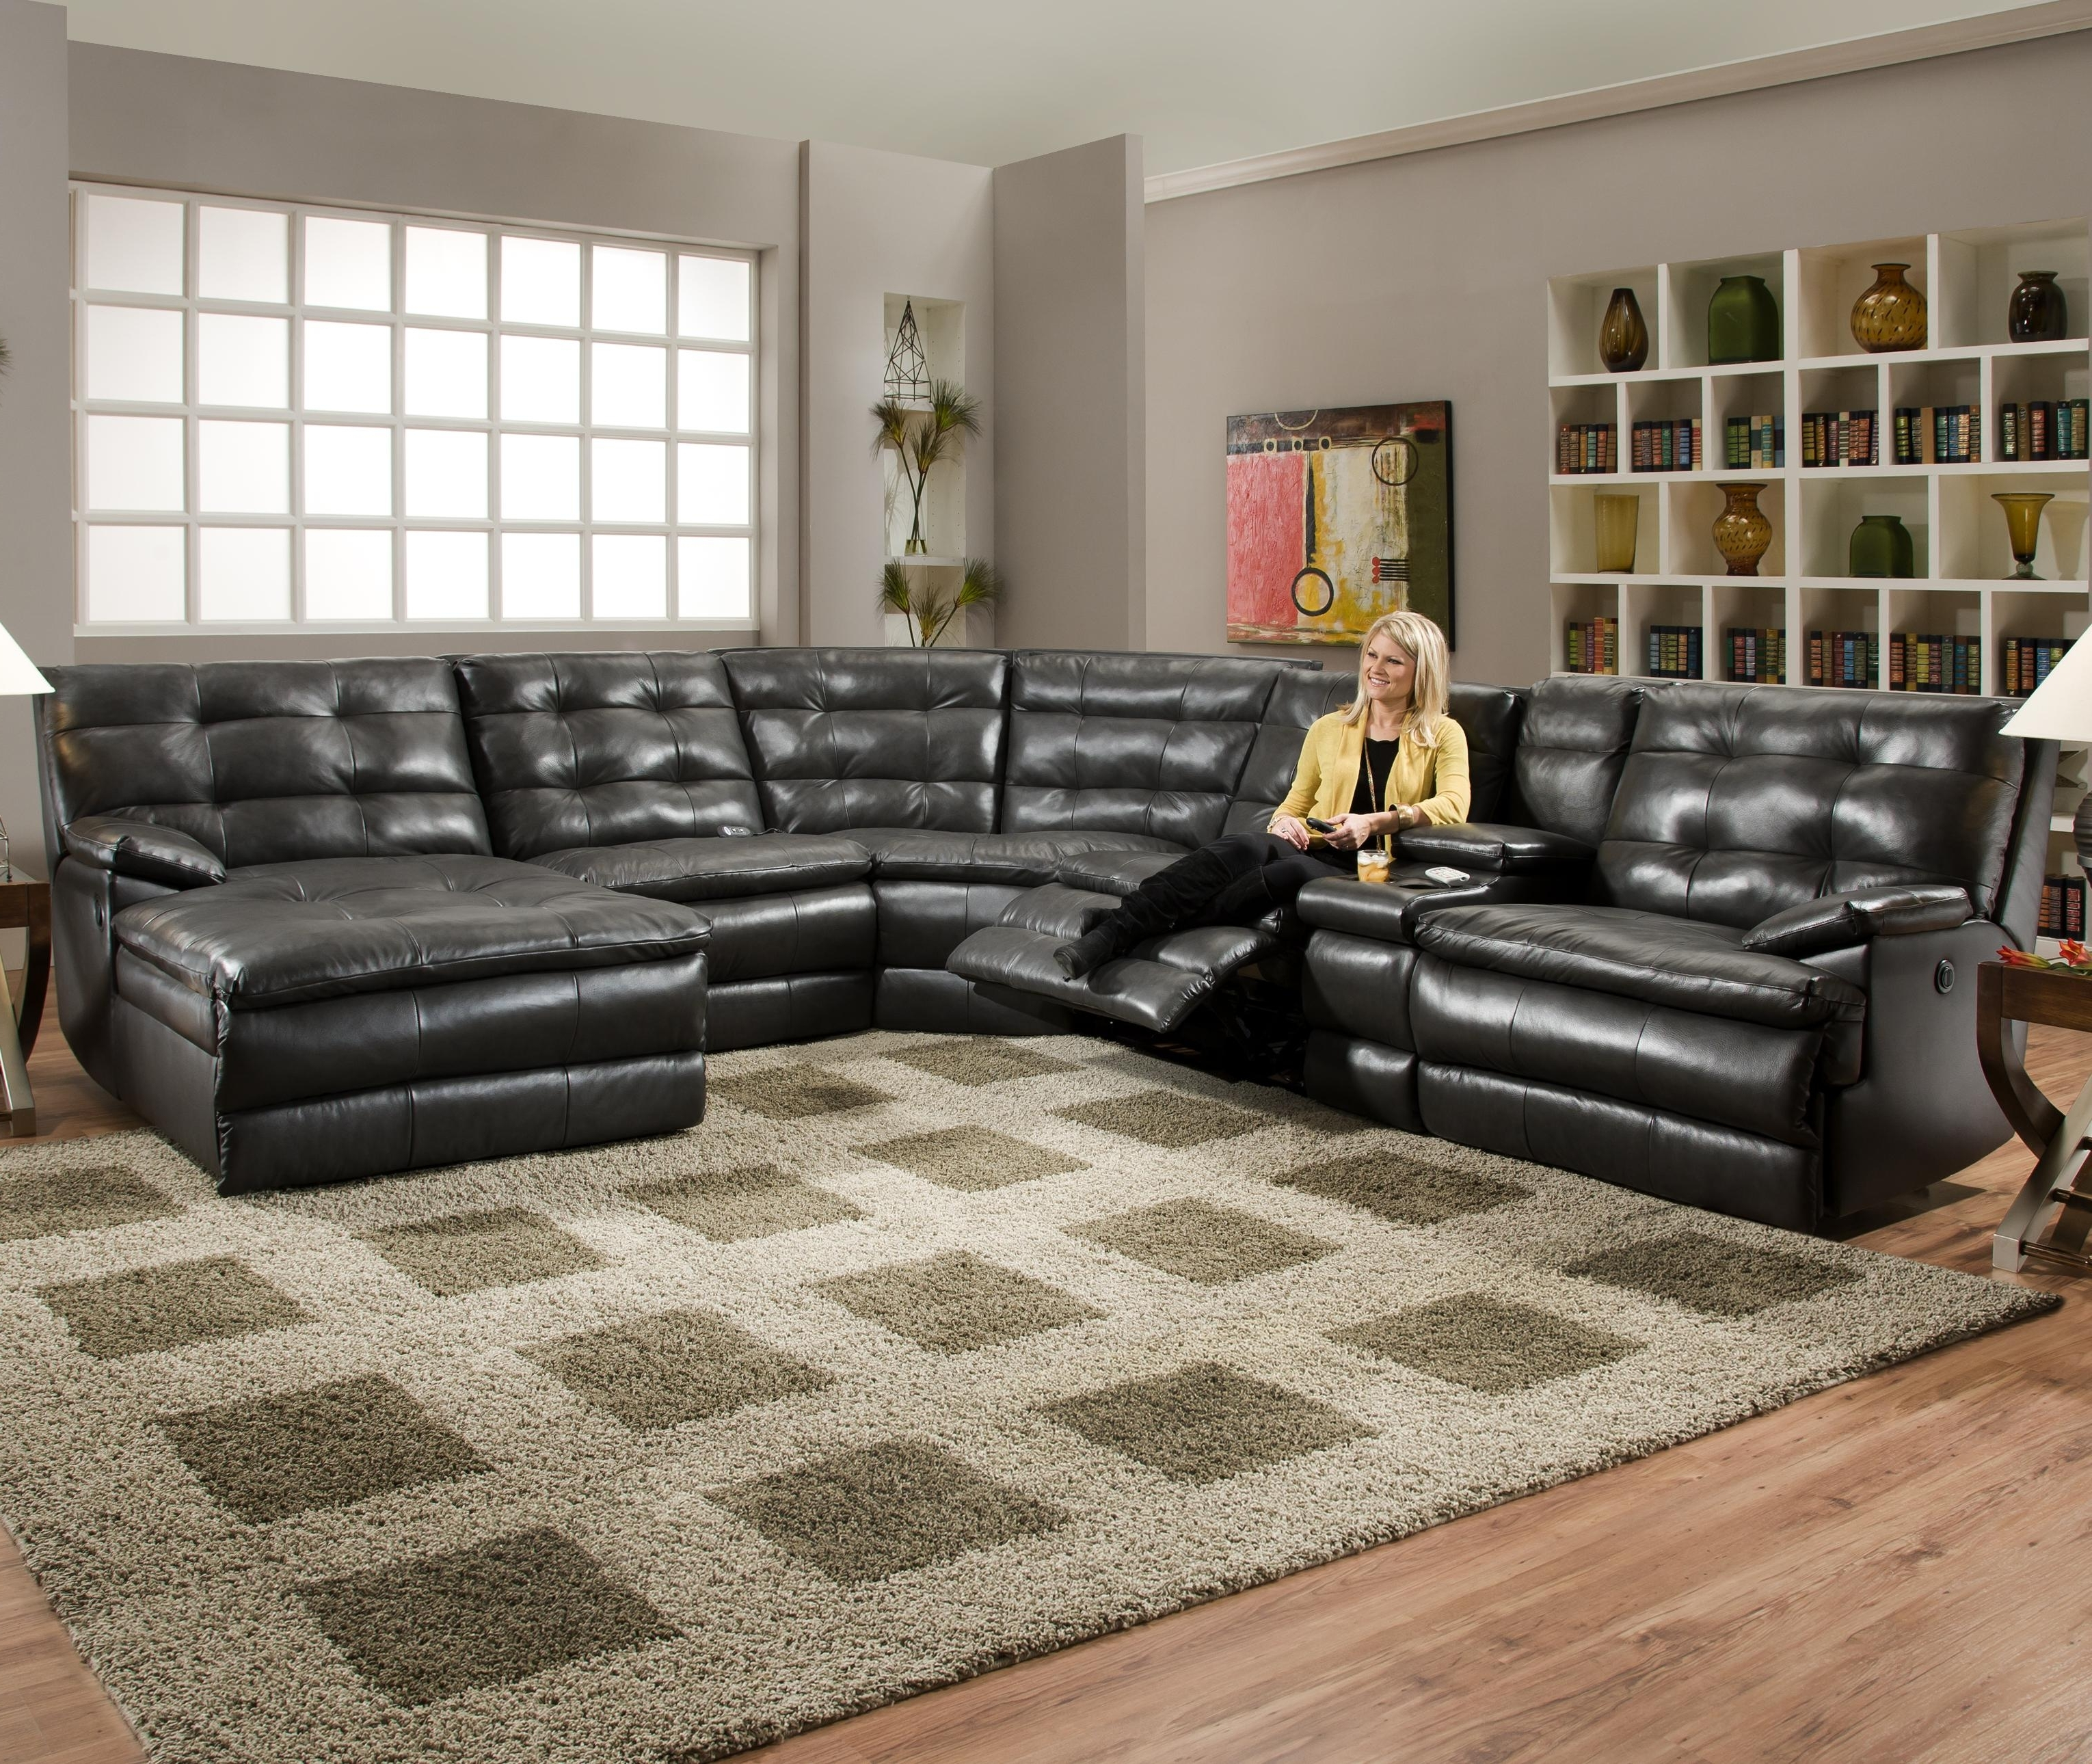 Trendy Chaise Recliners Throughout Sectional Sofa Design: Recliner Sectional Sofas Microfiber (View 12 of 15)